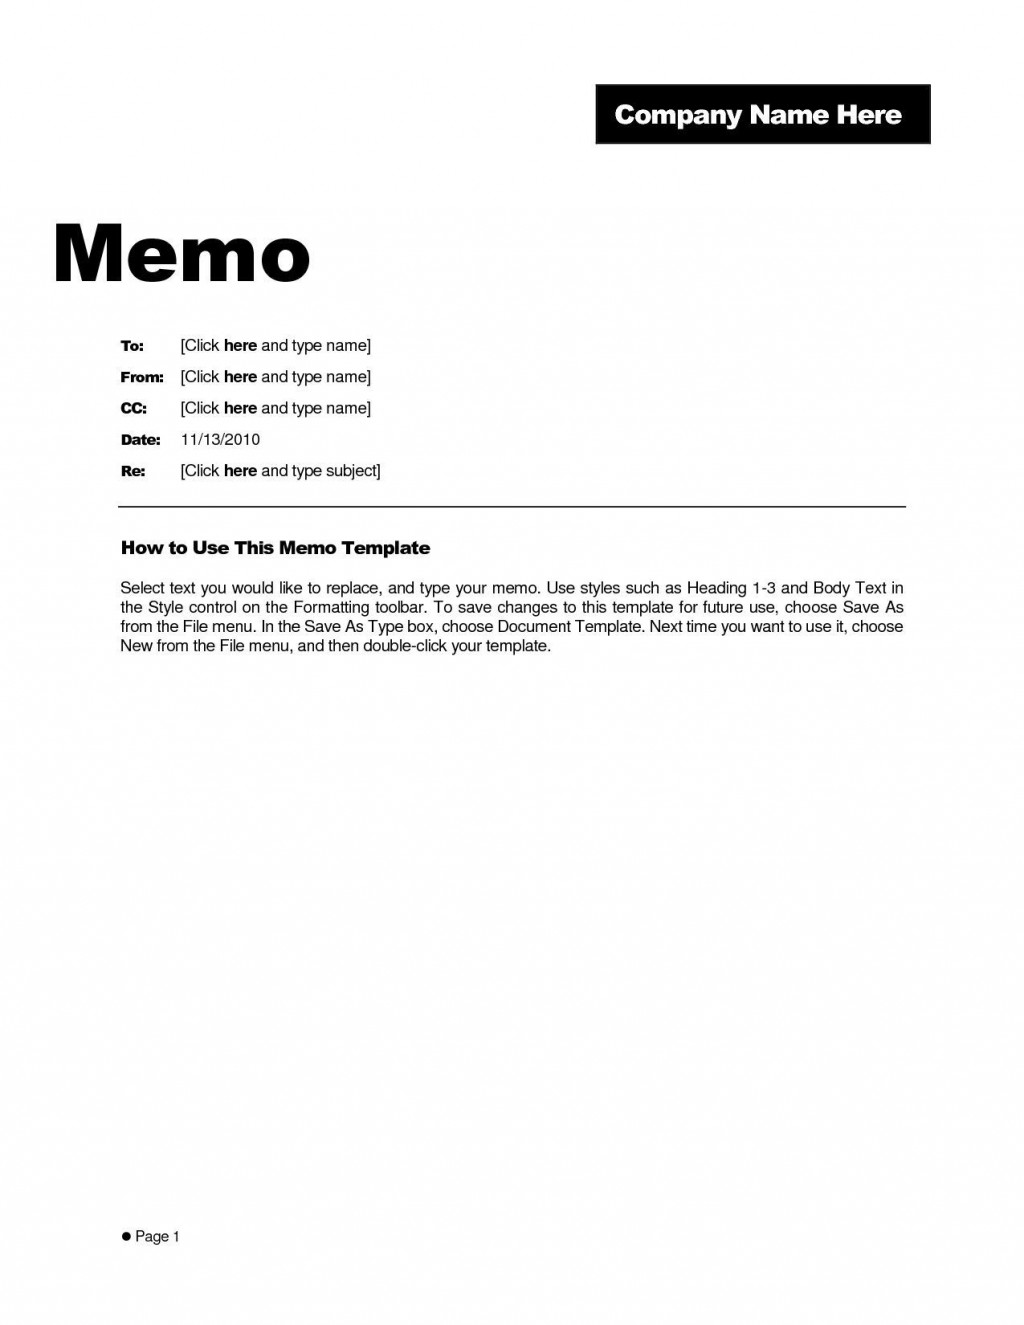 000 Archaicawful M Word Memo Template Image  Templates Microsoft Free Download BusinesLarge